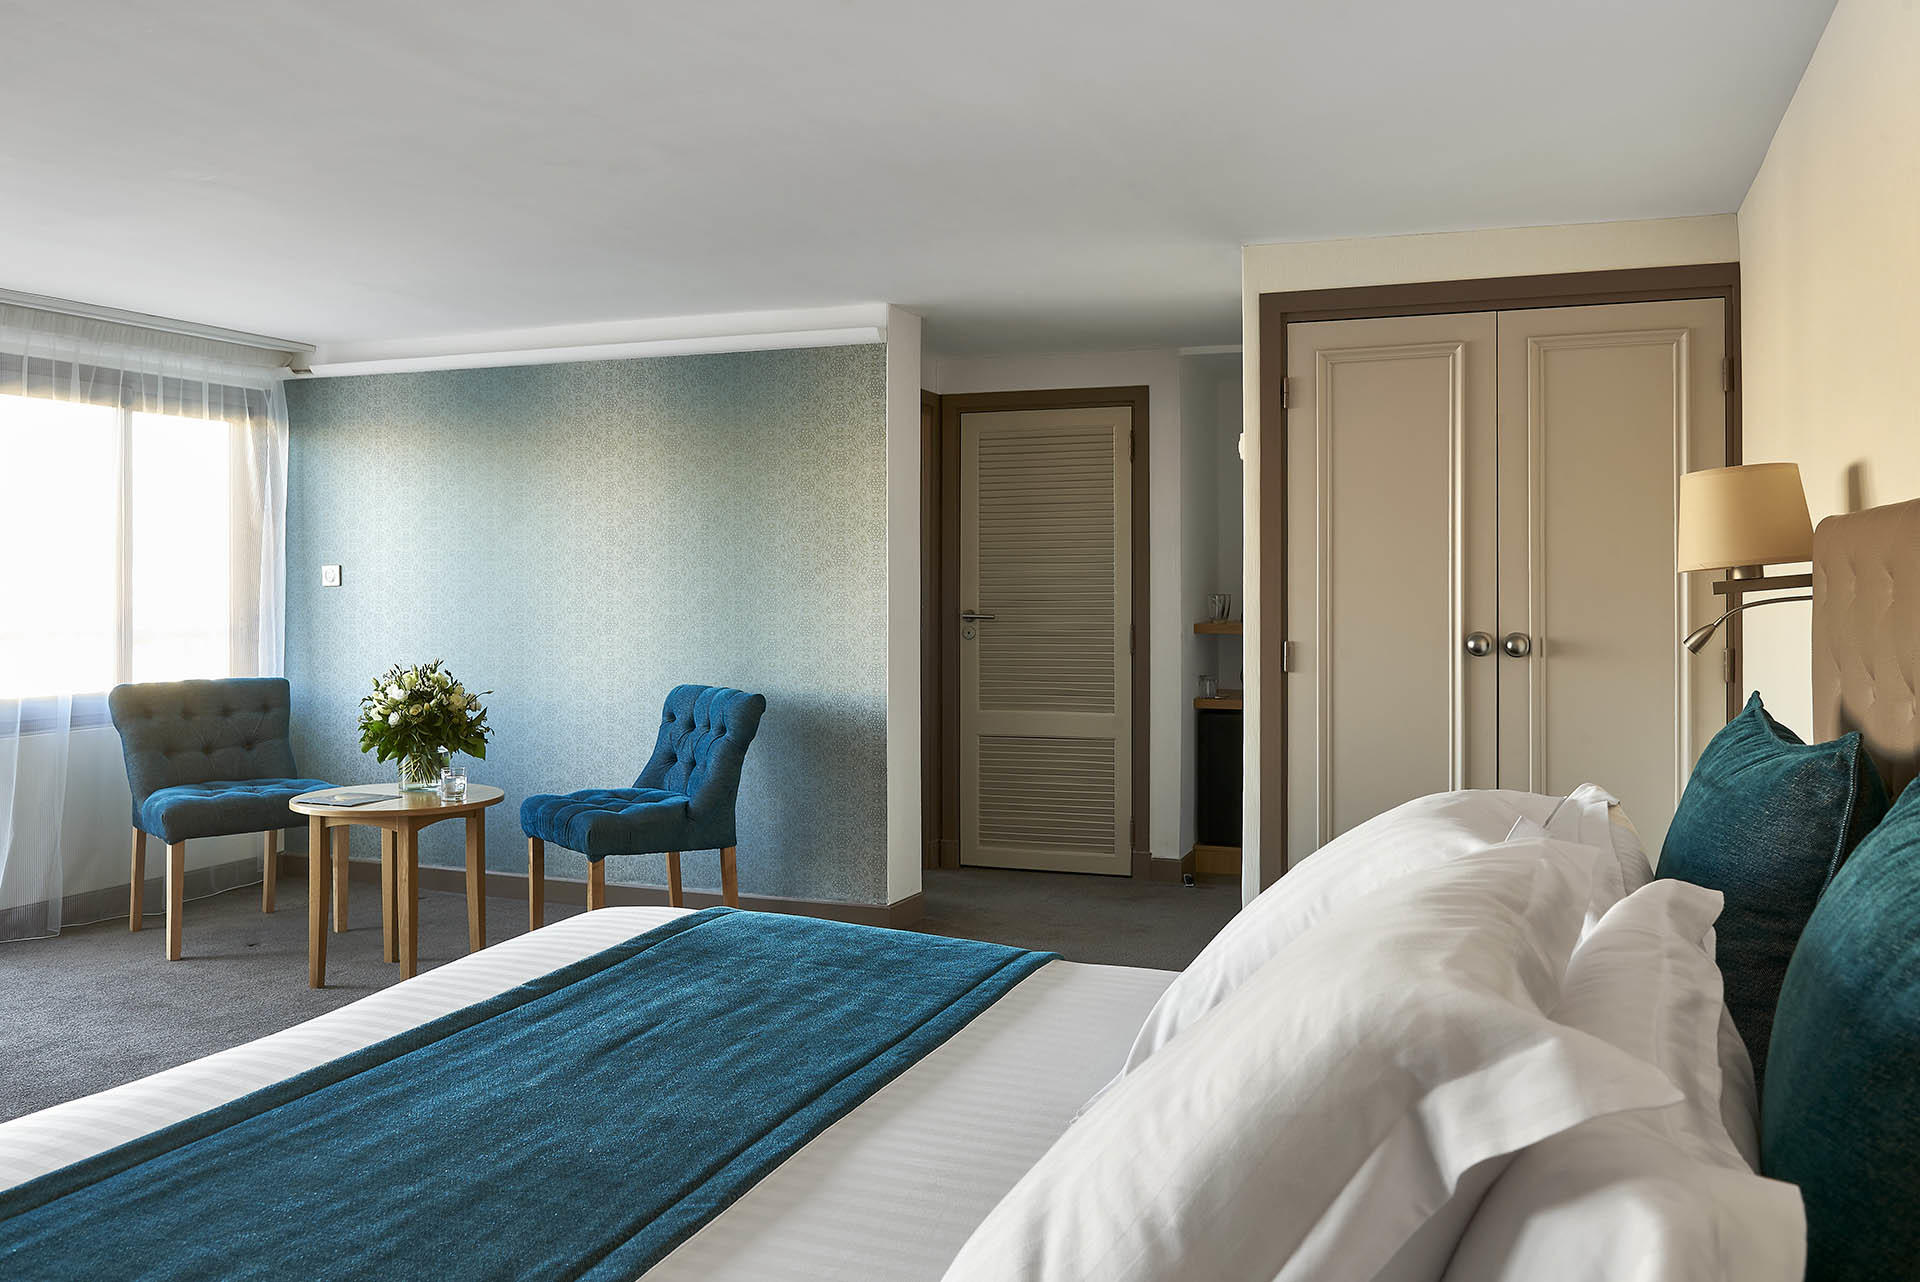 Splendid Hotel and Spa Deluxe Room